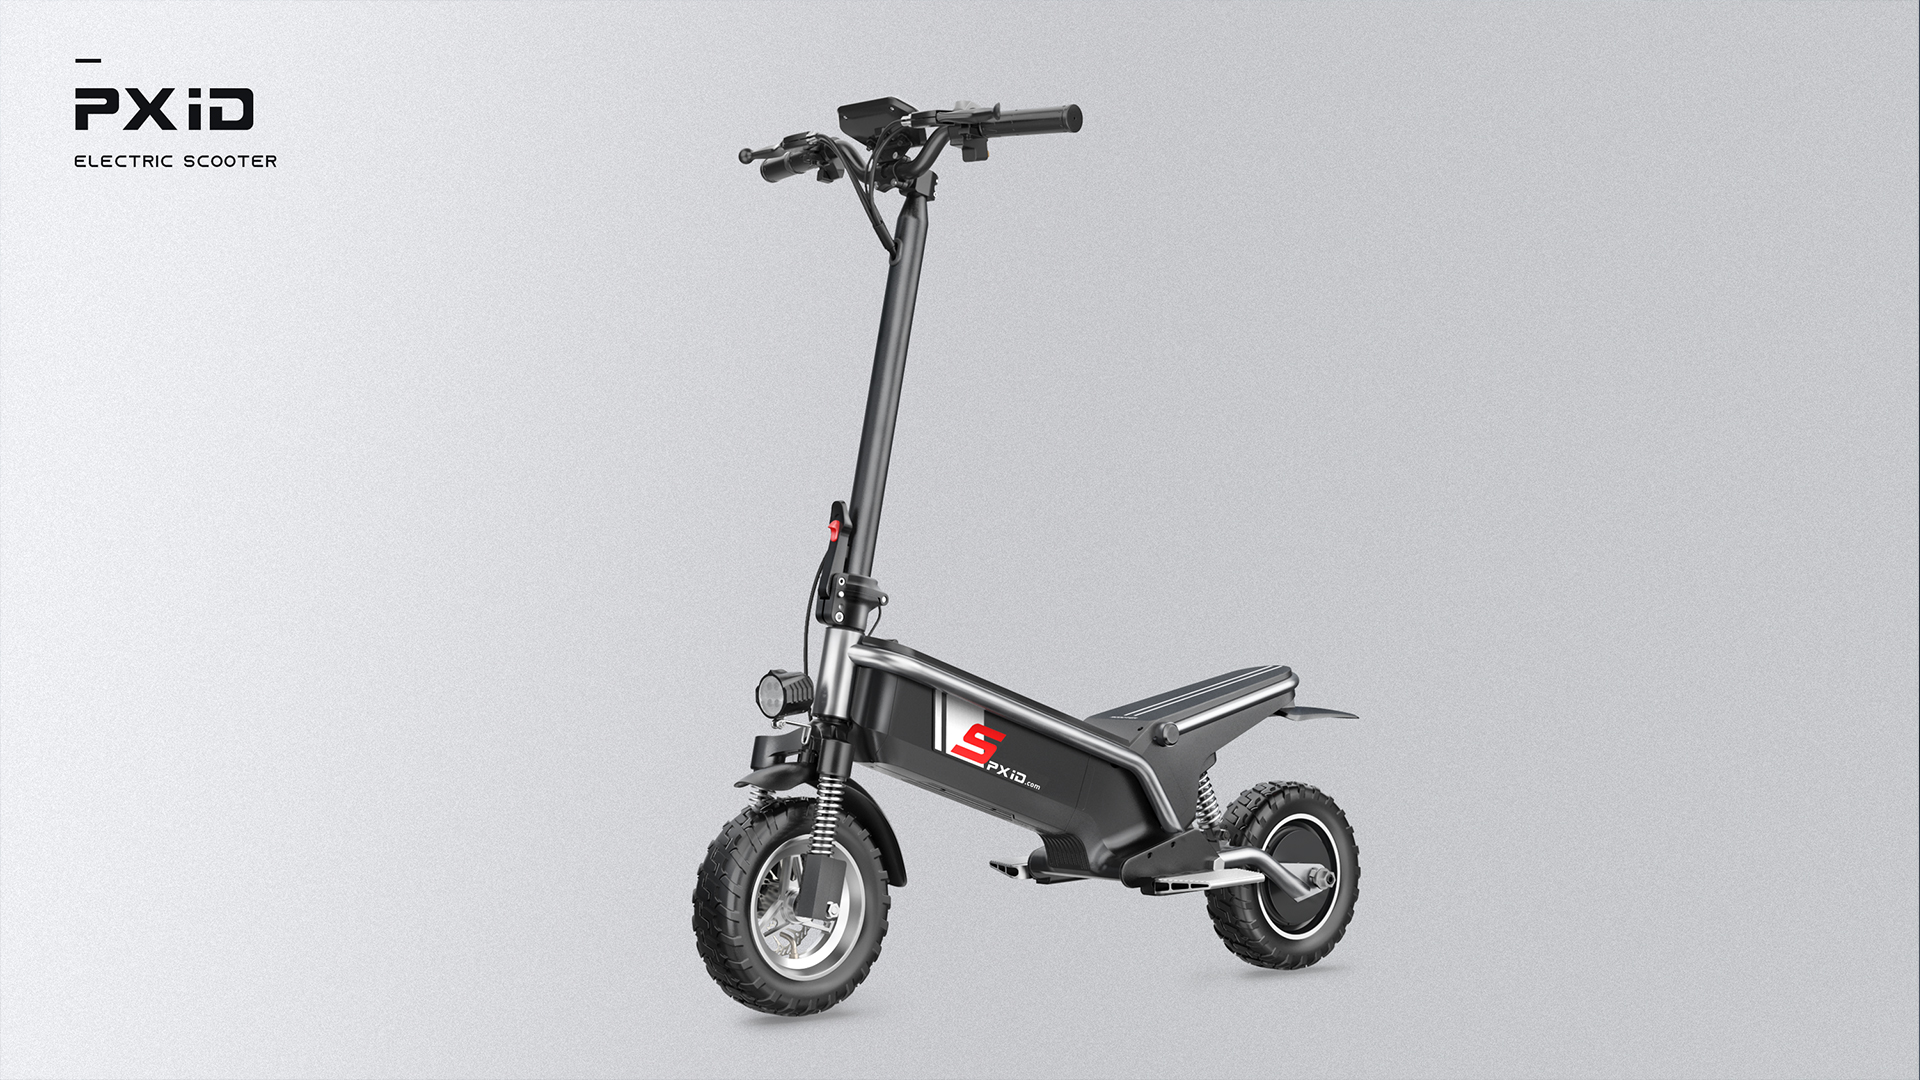 F1 foldable Off-road electric scooter design